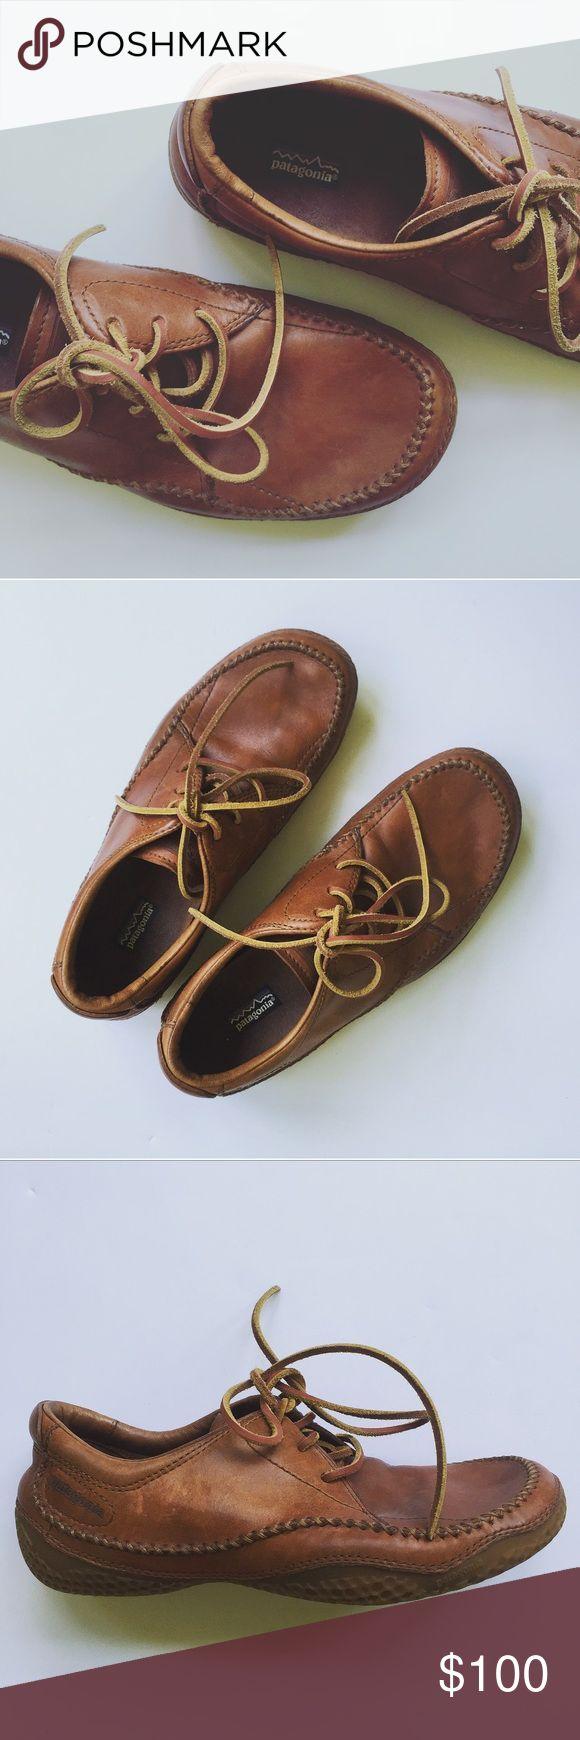 Patagonia leather Skywalk shoes Beautiful Vintage pair of leather Patagonia Skywalk shoes in cedar brown. Super rare, such a quality shoe. In excellent condition. Very little wear. US size 9, Eur 42. No trades! Patagonia Shoes